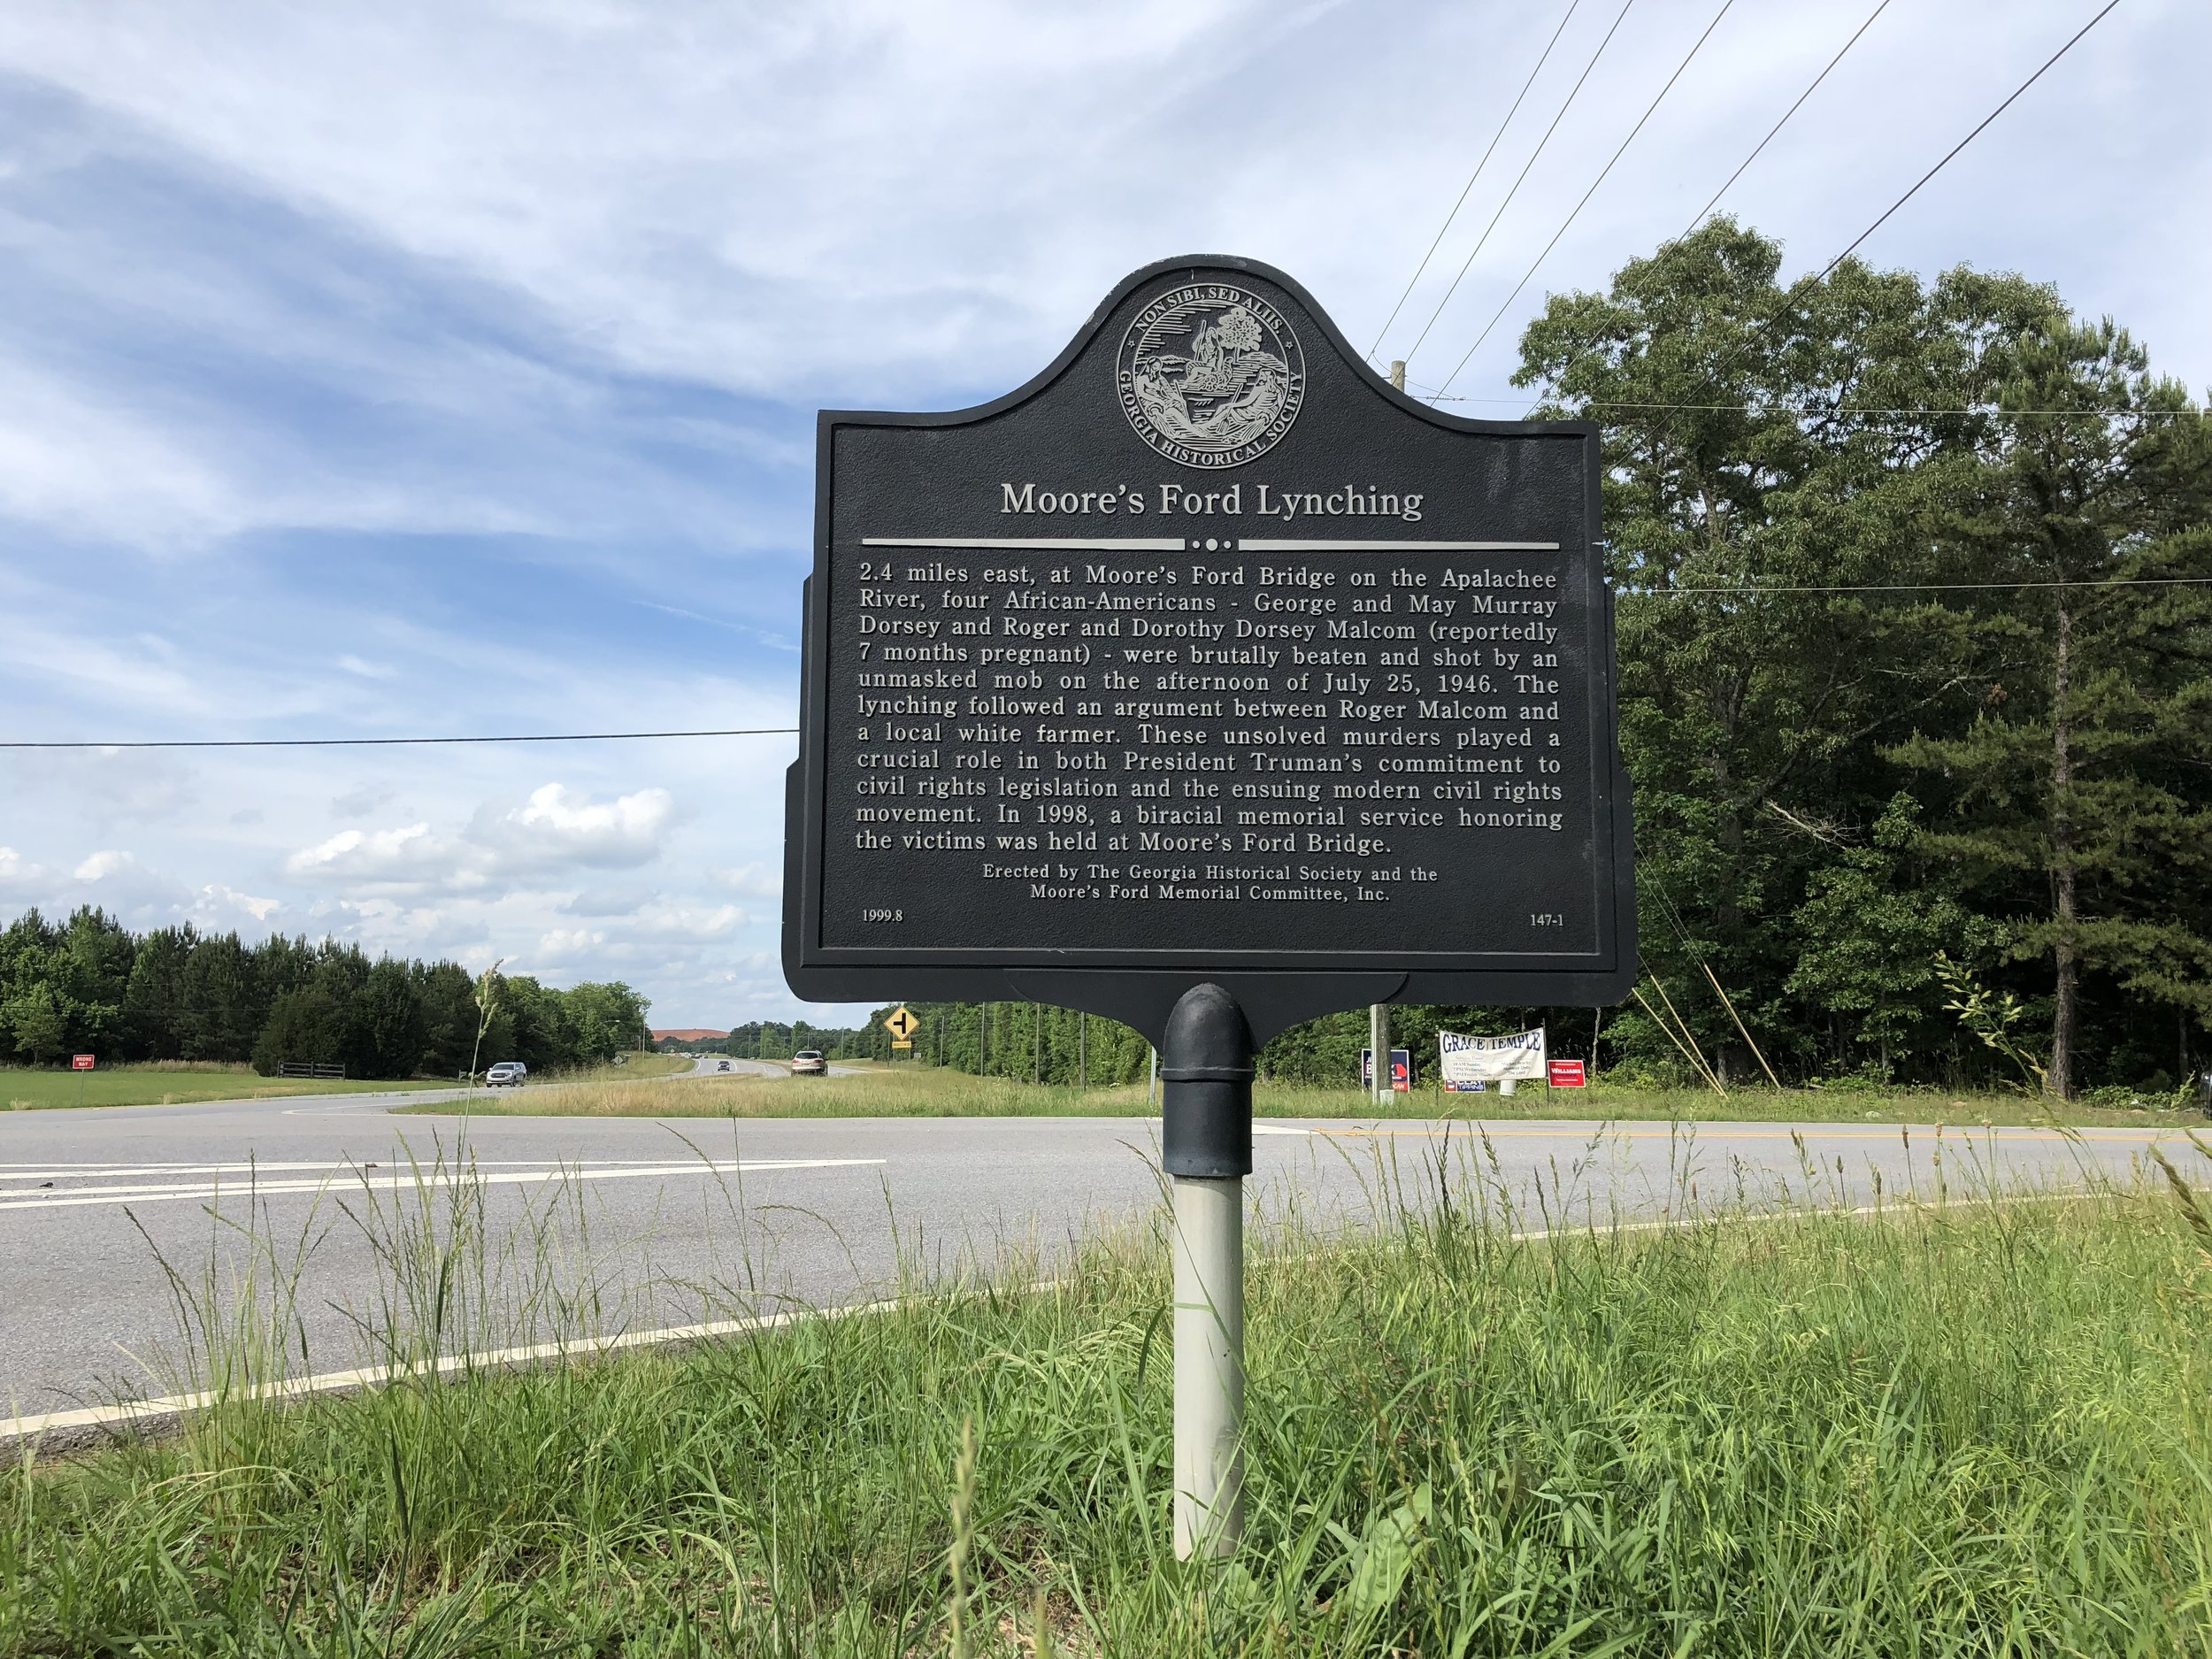 Historical marker on Highway 78 identifying the location of where to turn off the highway to reach the Moore's Ford Lynching site. The site, a bridge on the edge of Walton and Oconee counties, is several miles from this location in a rural setting.